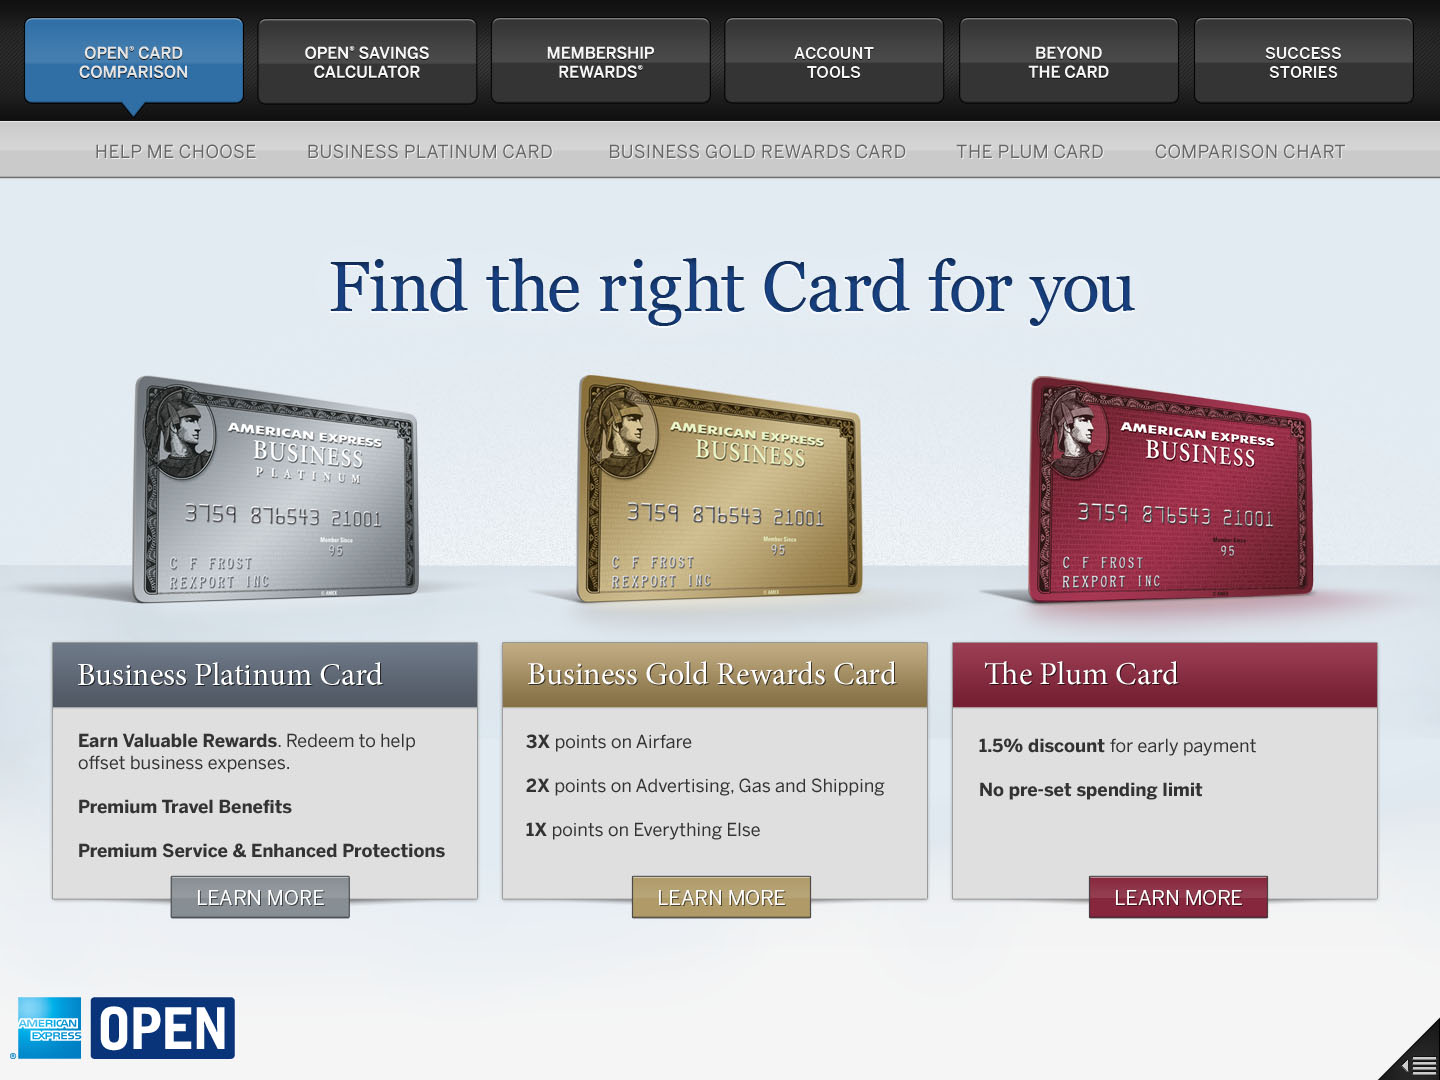 opentouch1_0001_cards_home.jpg